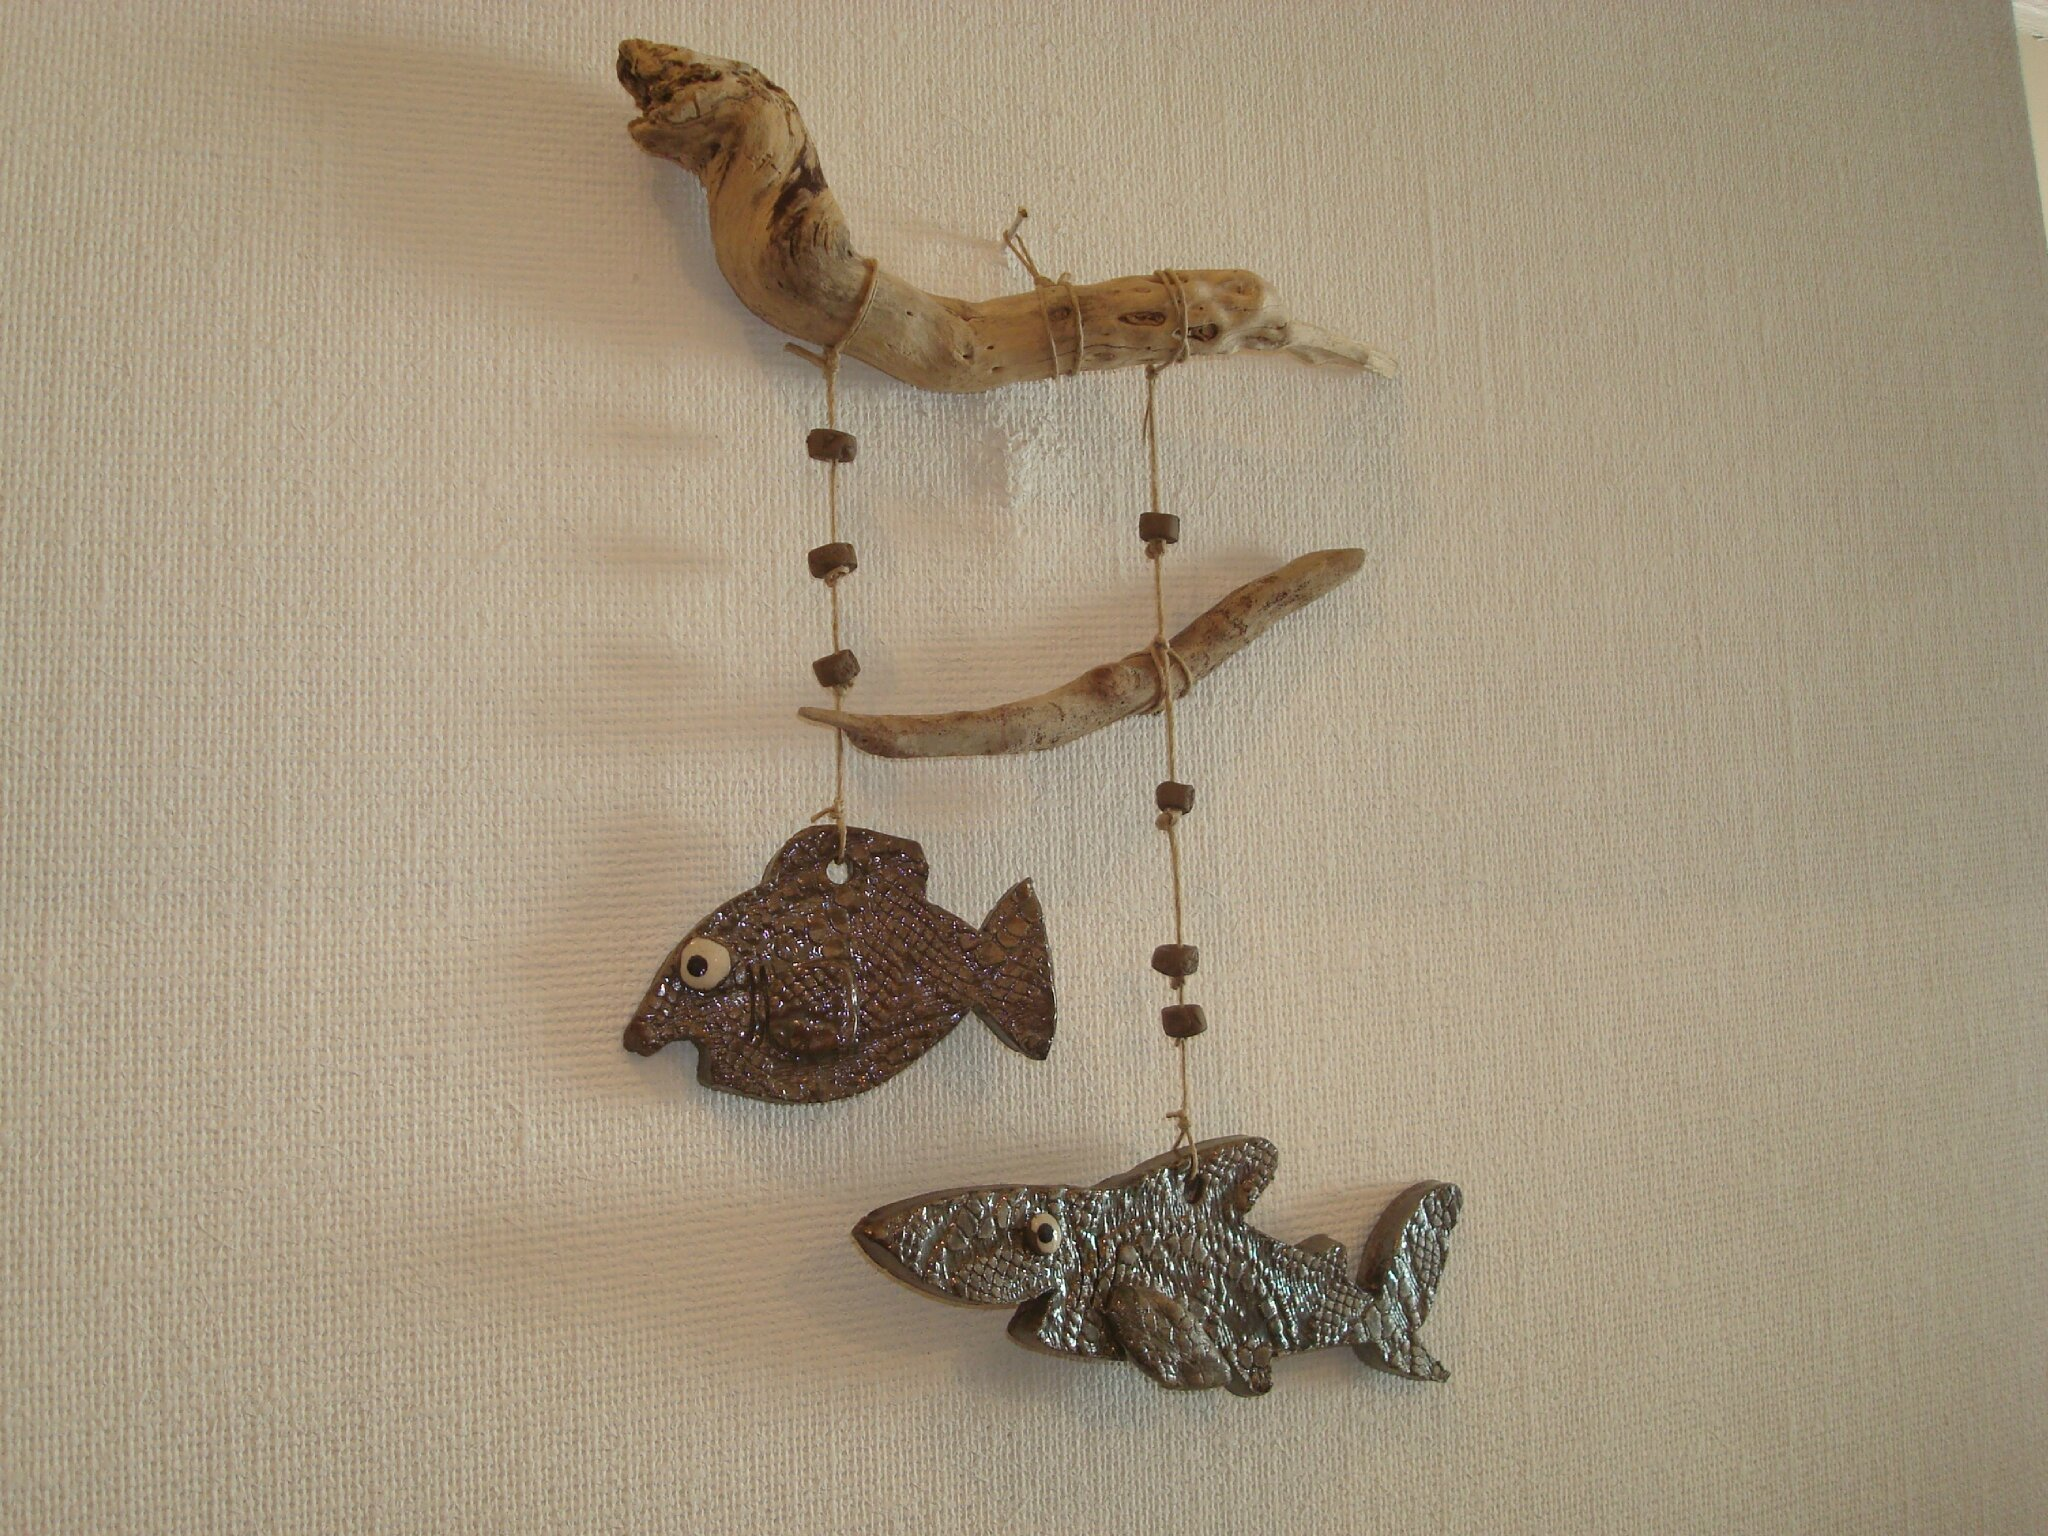 Suspension murale poissons raku et bois flott s for Suspension en bois flotte